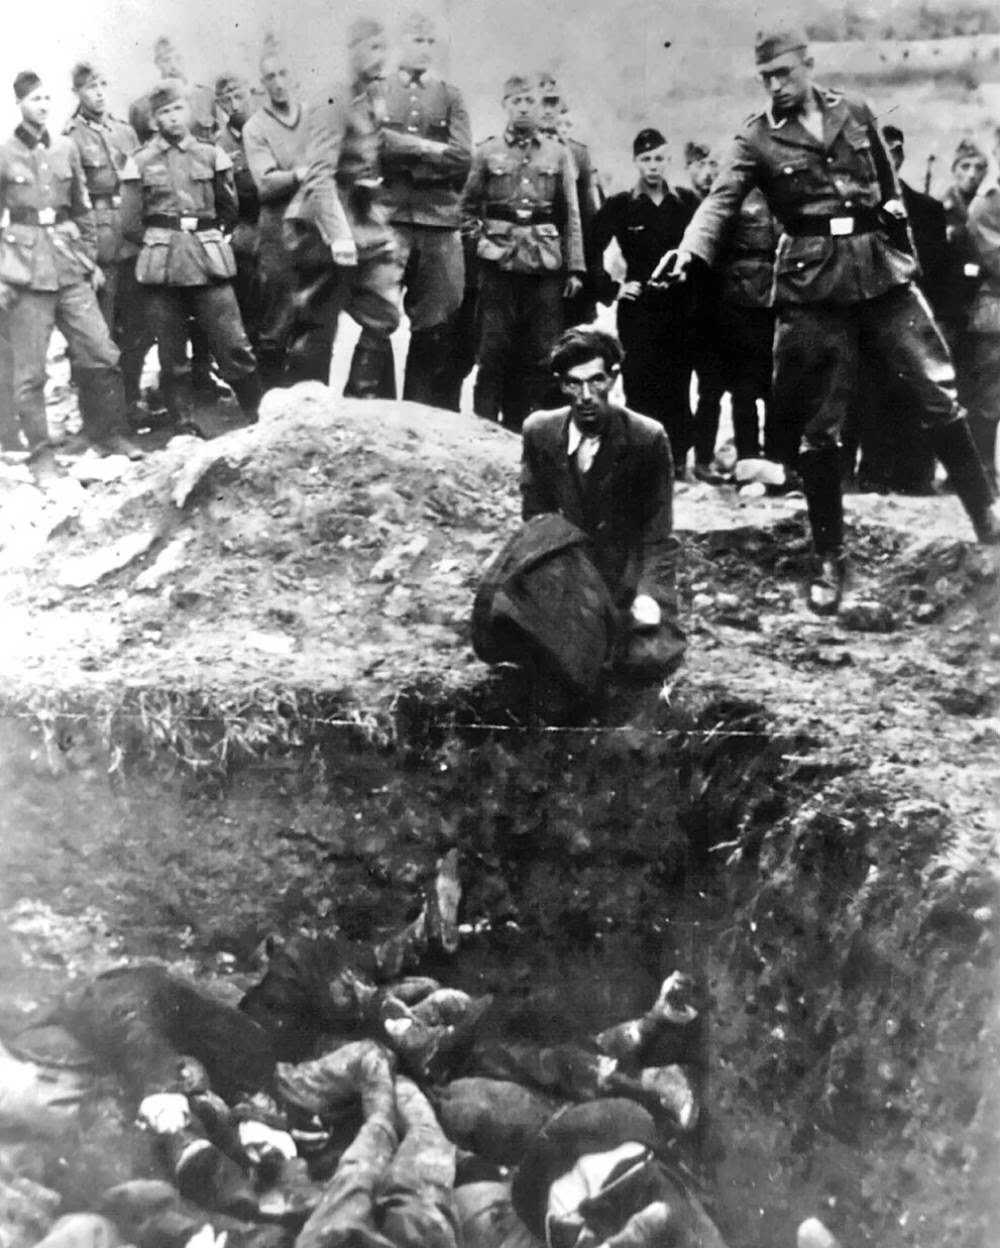 """The last Jew in Vinnitsa"" – Member of Einsatzgruppe D (a Nazi SS death squad) is just about to shoot a Jewish man kneeling before a filled mass grave in Vinnitsa, Ukraine, in 1941. All 28,000 Jews from Vinnitsa and its surrounding areas were massacred."